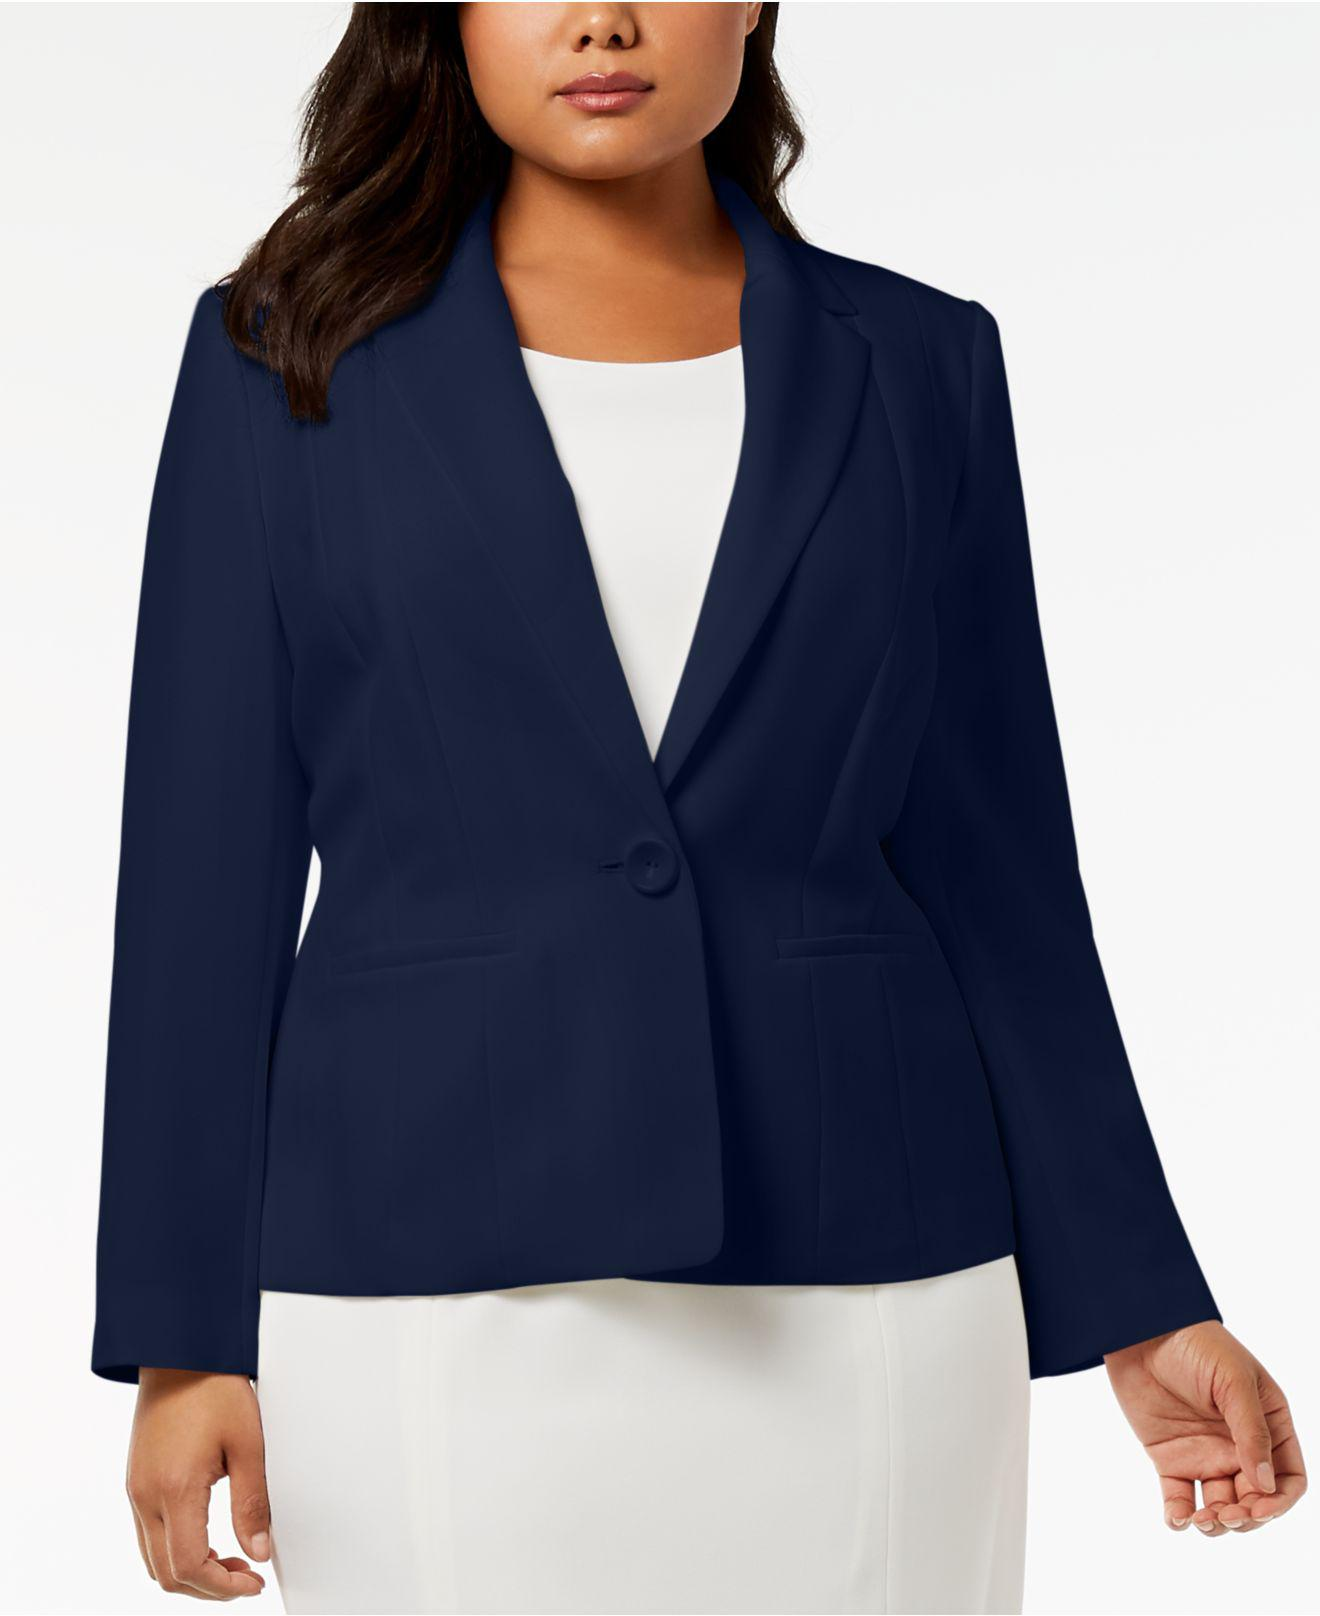 1c1d631b0d3 Lyst - Kasper Plus Size One-button Crepe Jacket in Blue